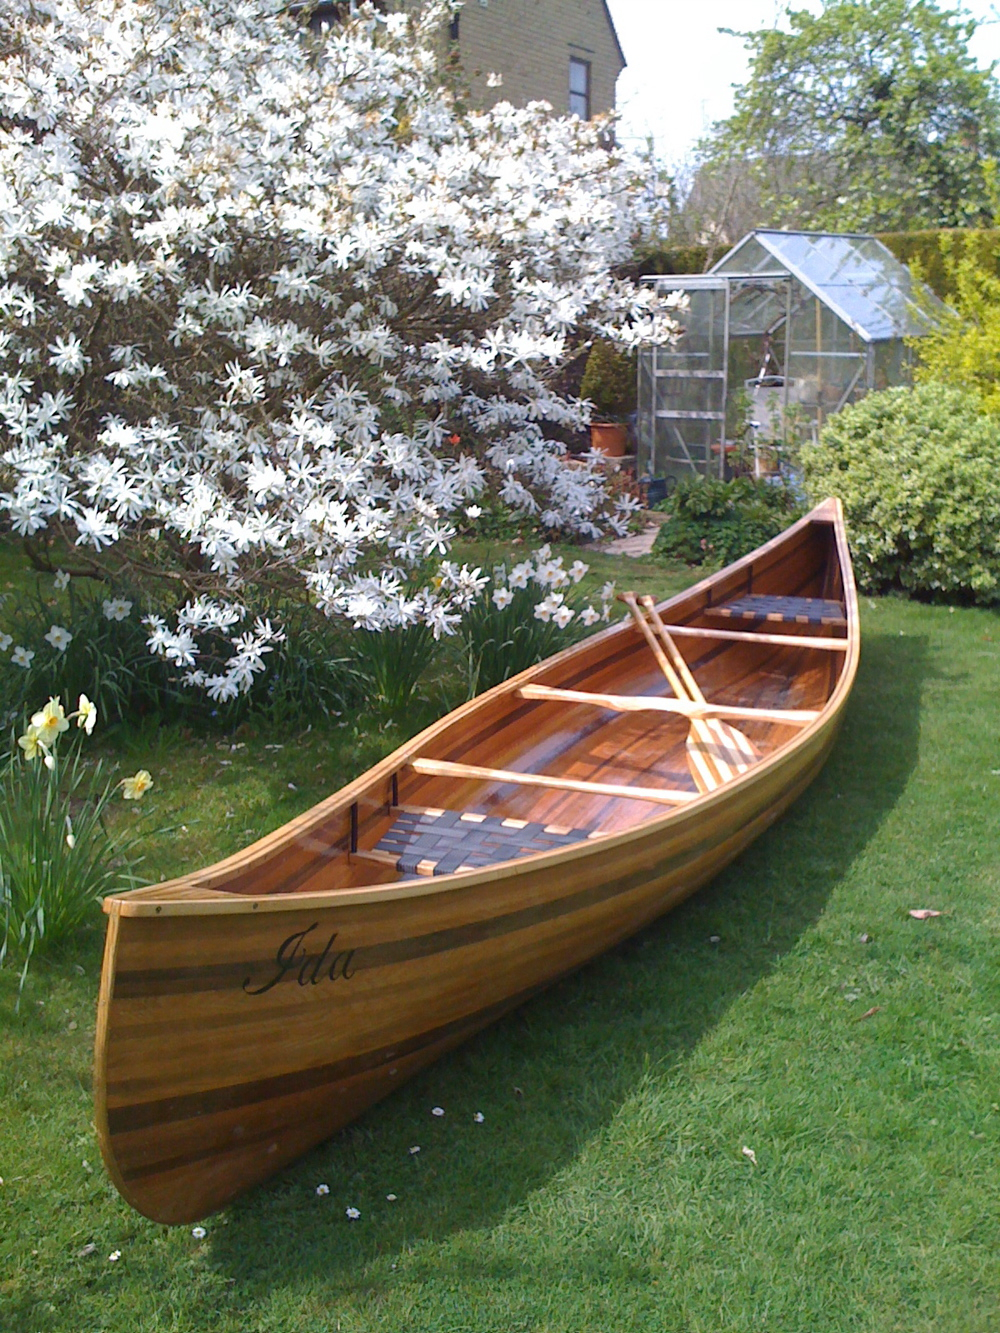 18ft cedar canoe built from an adapted 1920's design by E.M.White.